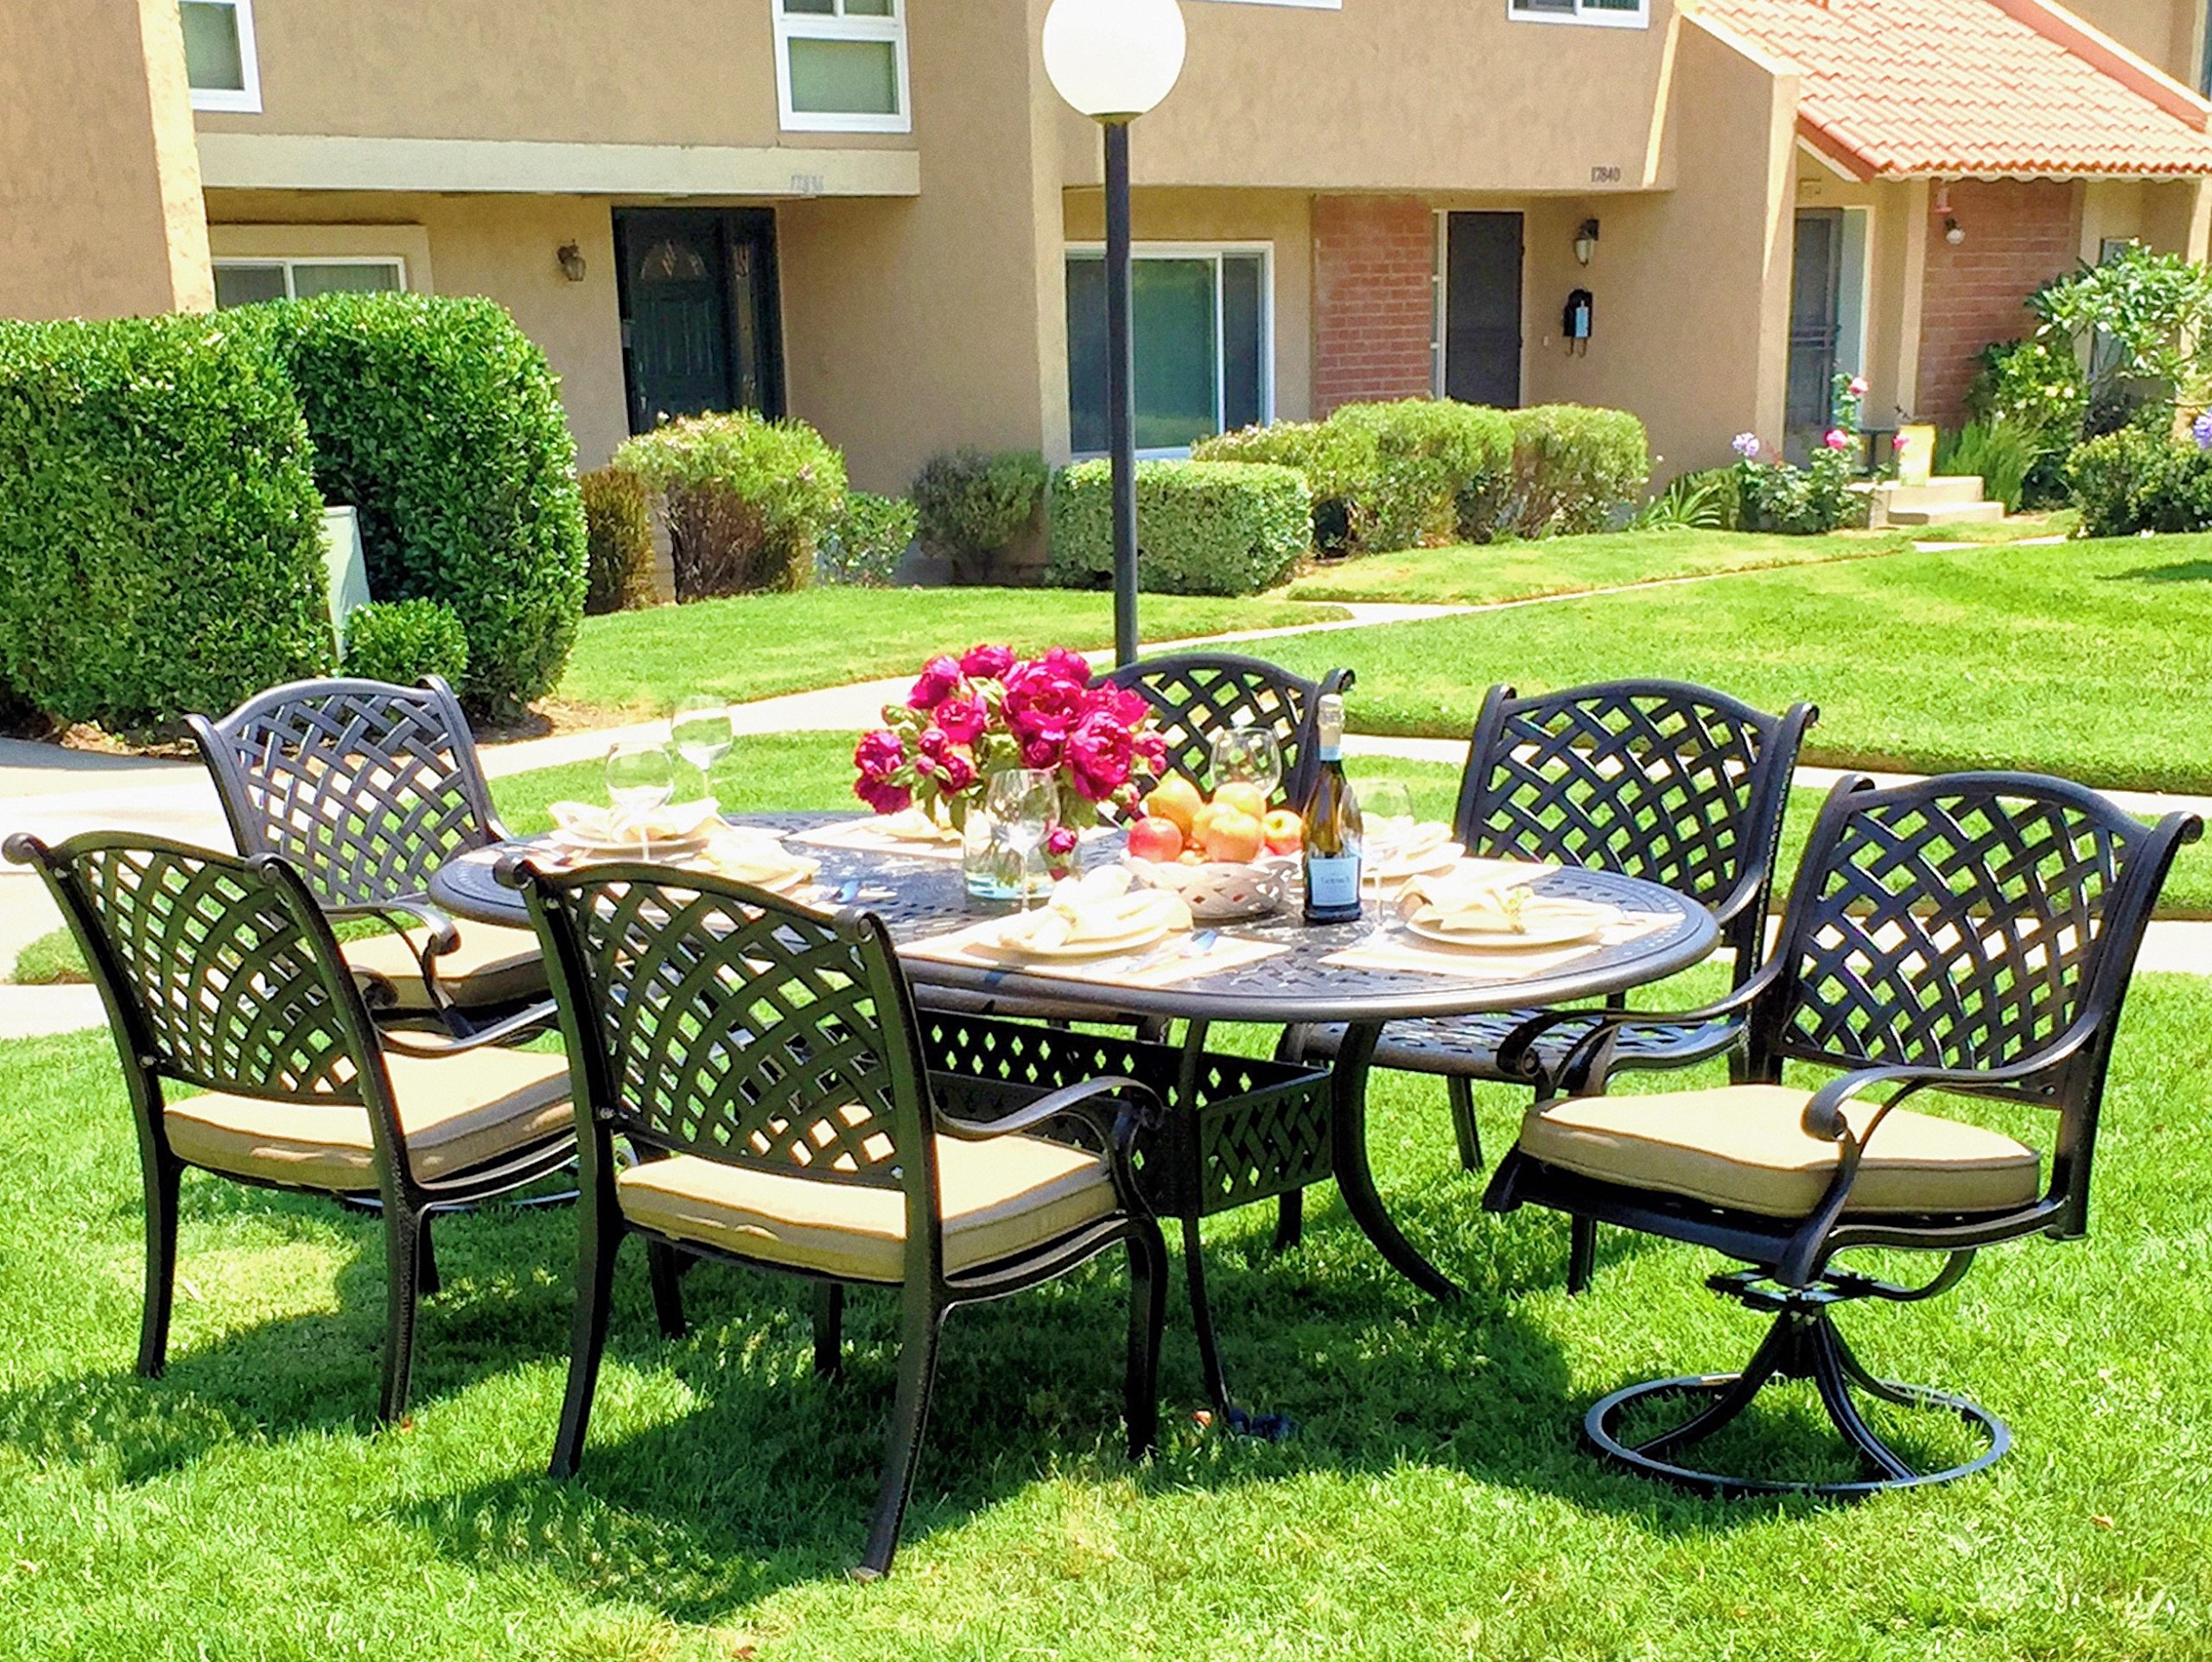 "Nevada 7-Piece Cast Aluminum Patio Dining Set, 6 Mixed Chairs - Crafted with solid cast aluminum construction / Features non-rust and weather resistant multi-step hand-finish in Antique Bronze Features adjustable levelers for non-flat surfaces / Includes 2"" center umbrella hole with cover (1) Dining table dimensions: 86L x 42W x 29H inch / Table weight: 77 lbs (Assembly required) - patio-furniture, dining-sets-patio-funiture, patio - A1gkMixo0fL -"